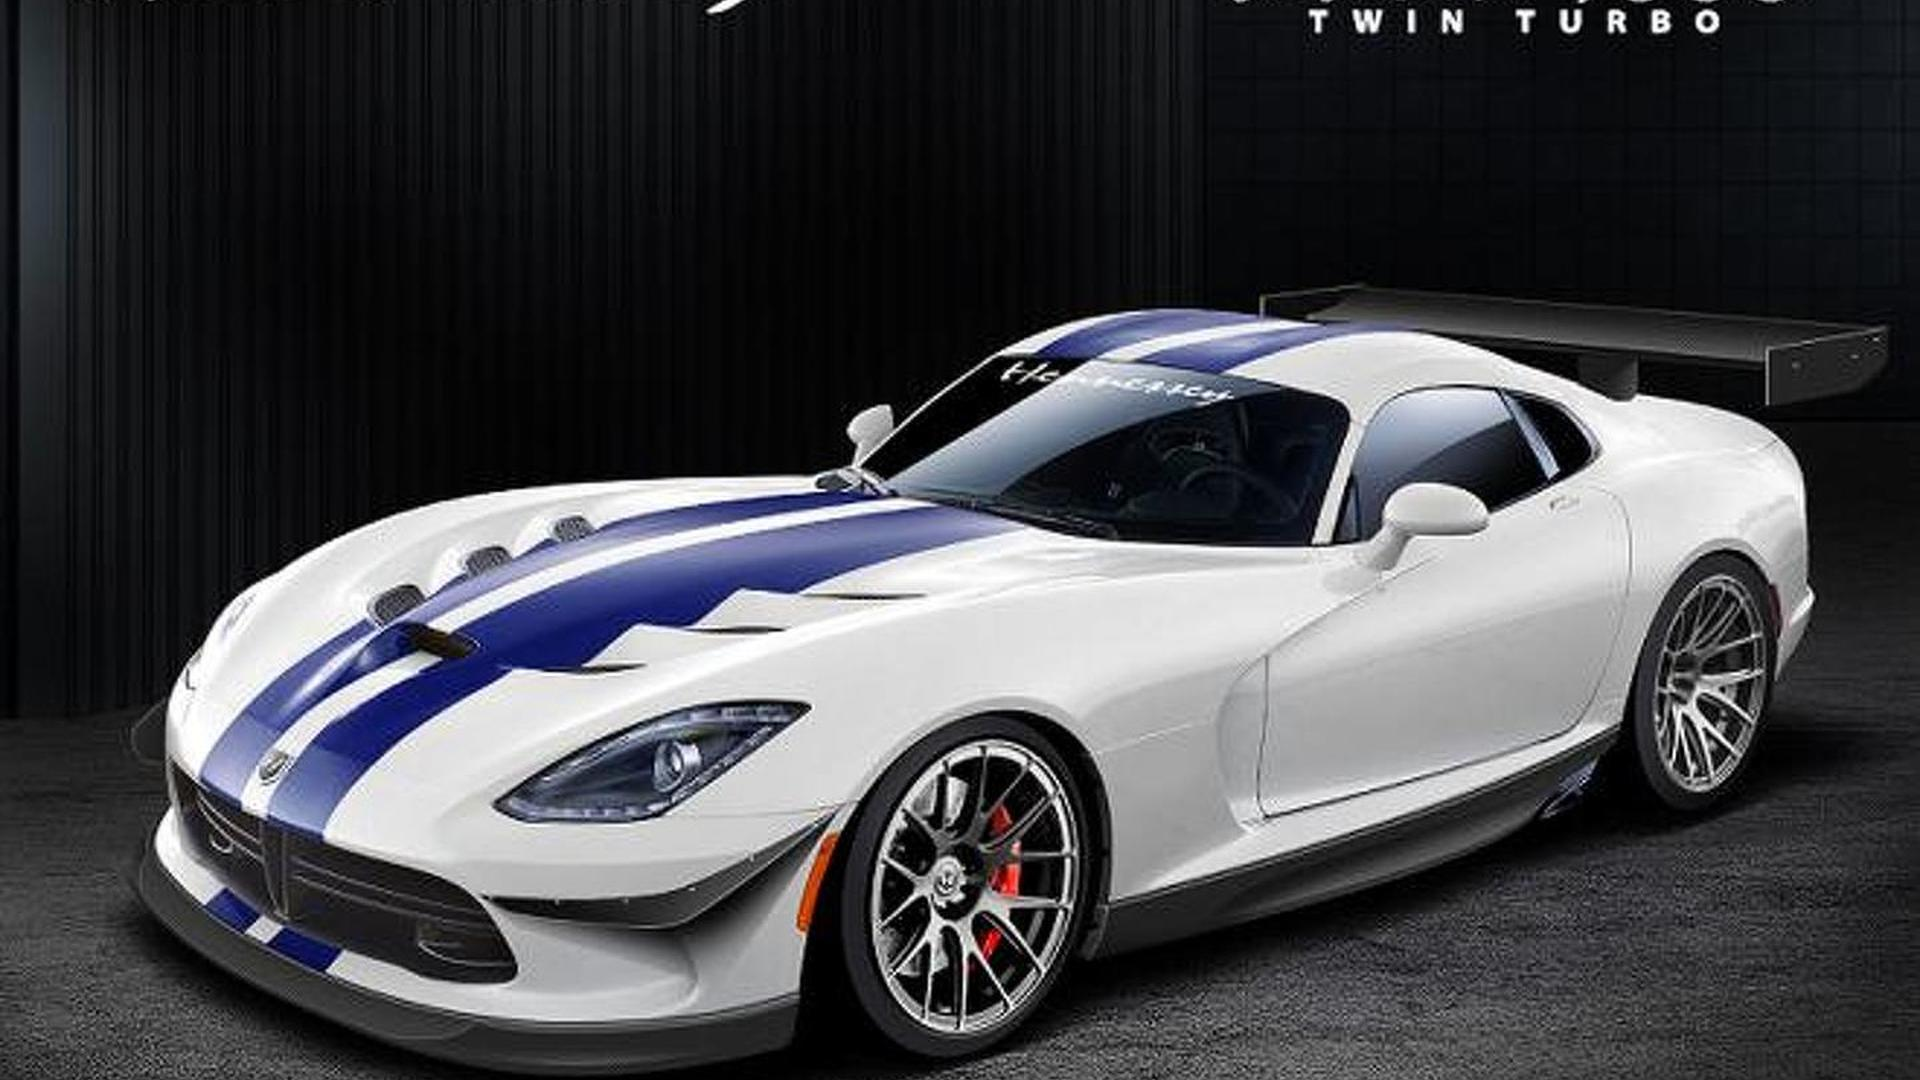 Https www motor1 com news 34085 hennessey viper based venom 700r and 1000 twin turbo rendered aftermarket tuning hennessey performance 2013 viper